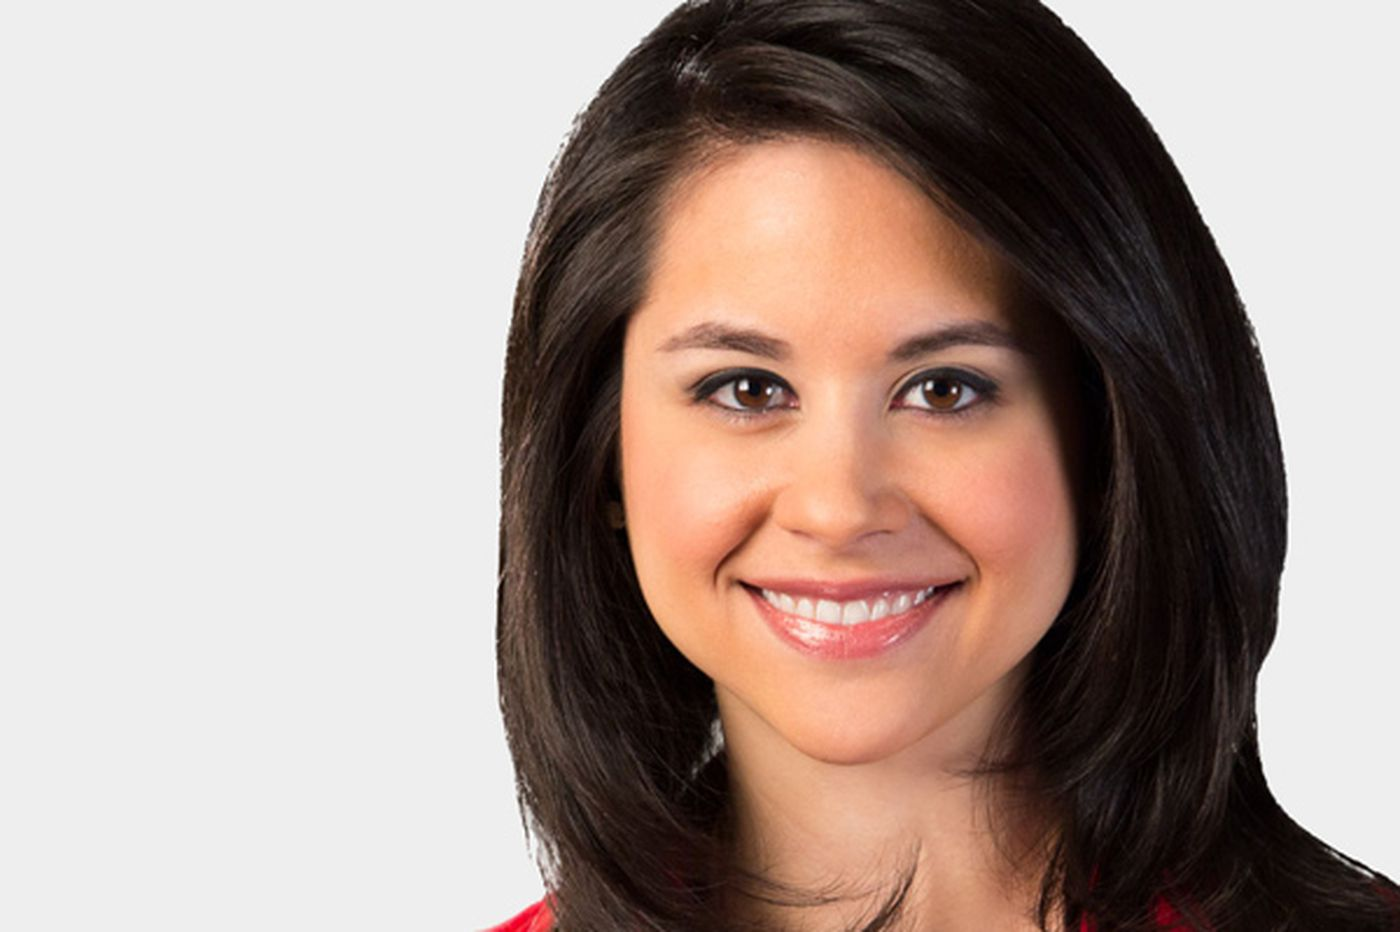 CBS3's Jan Carabeo gets engaged